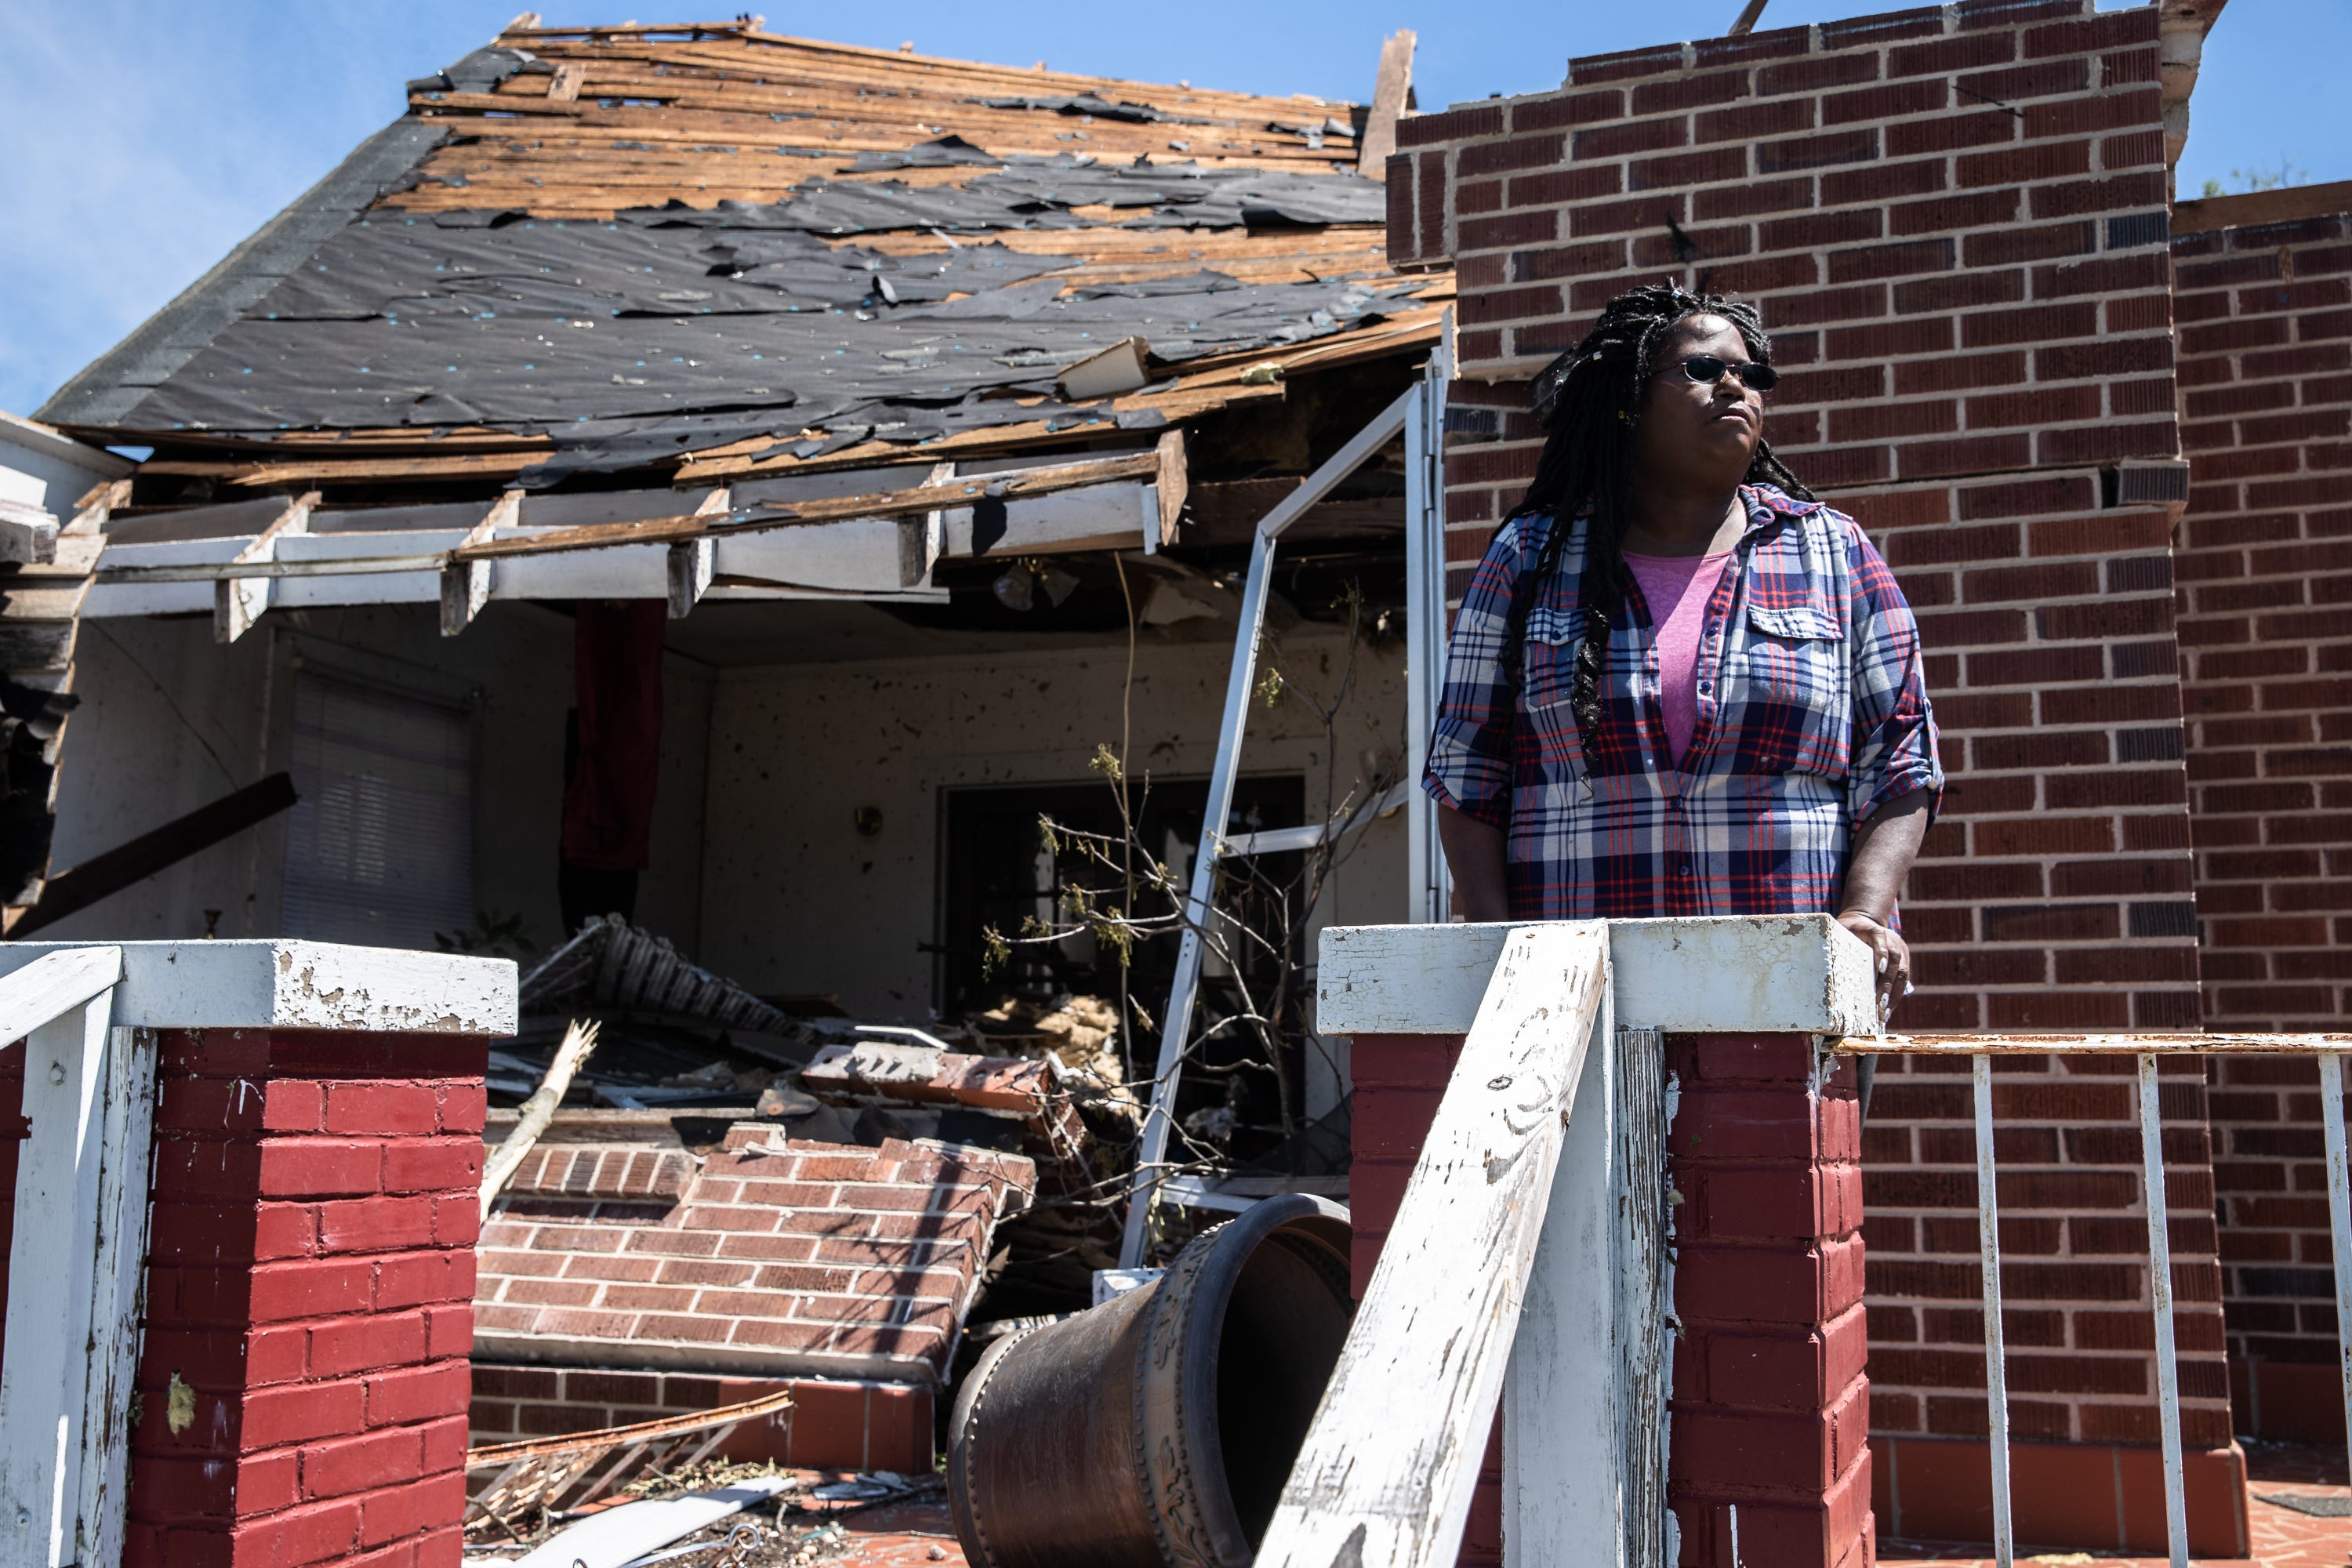 Stephanie Scott, 50, at her Seneca, SC home on South Oak Street April 15, 2020, which an insurance adjuster deemed a total loss after an EF3 tornado with 160 mph winds touched down in the early morning hours of Monday, April 13th.